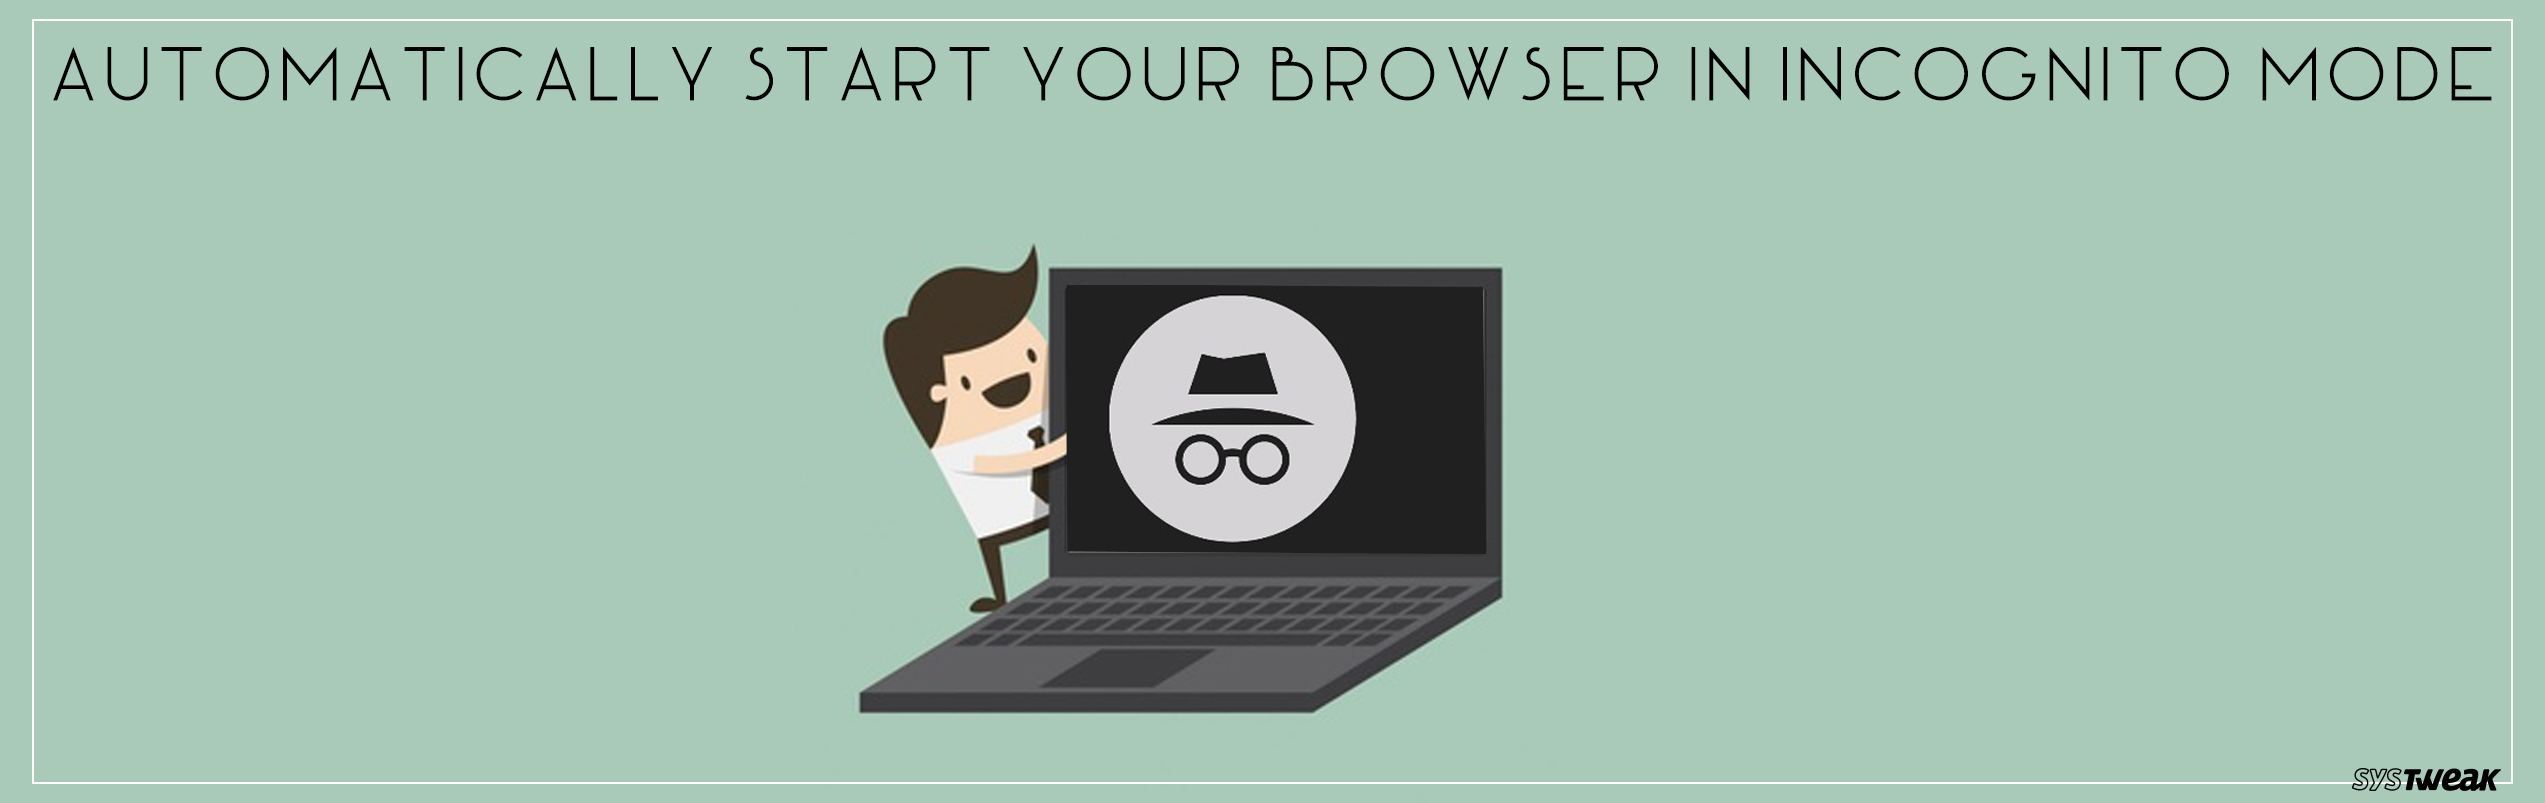 How To Automatically Start Browser in Incognito Mode